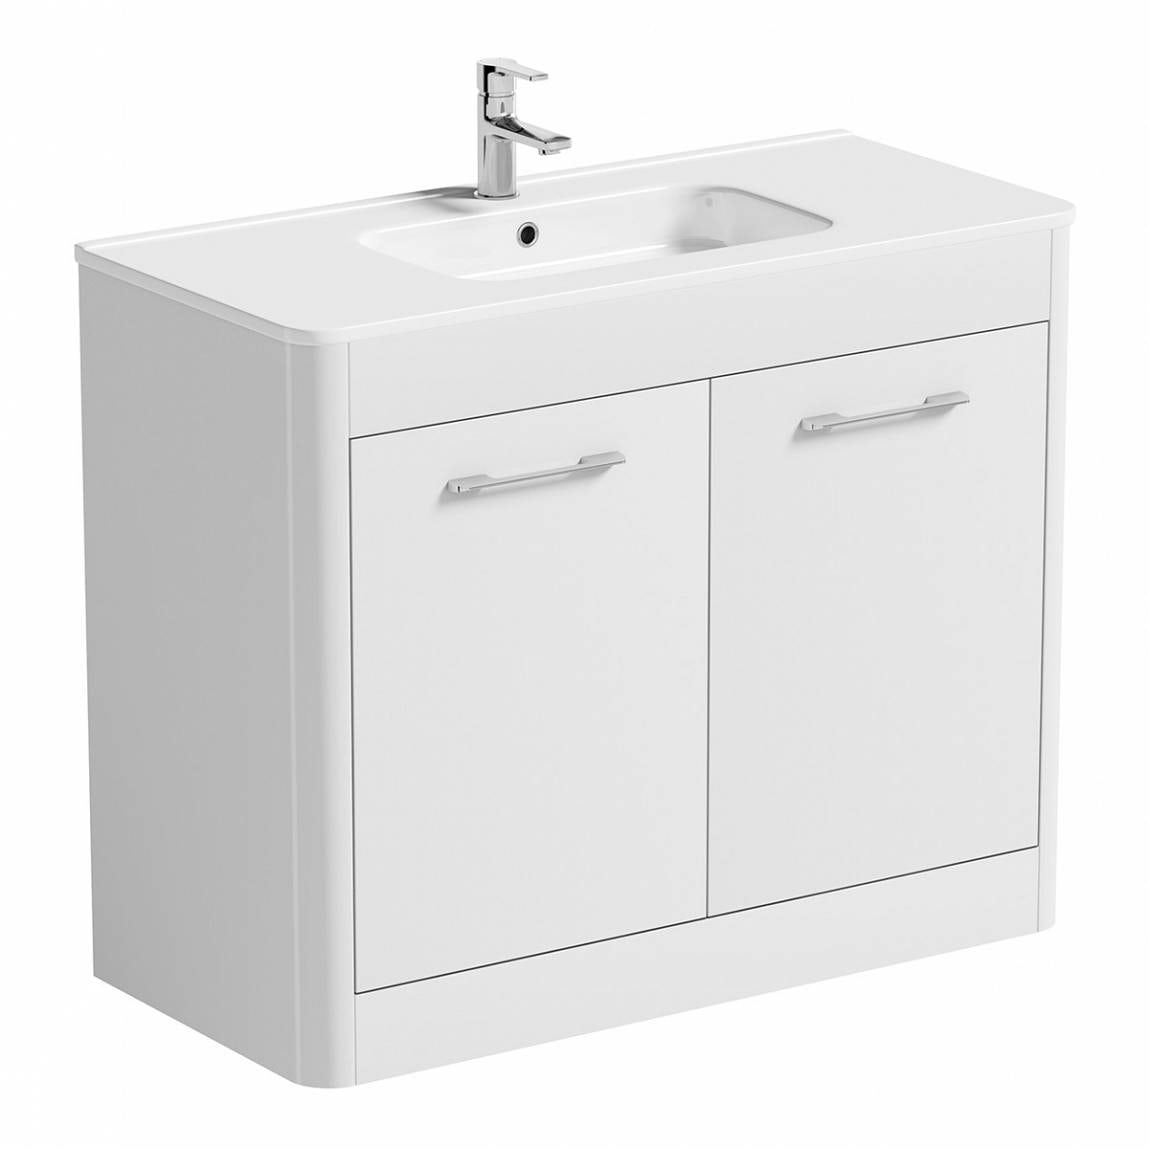 Sky white floor mounted 1000 door unit basin for 1000 door